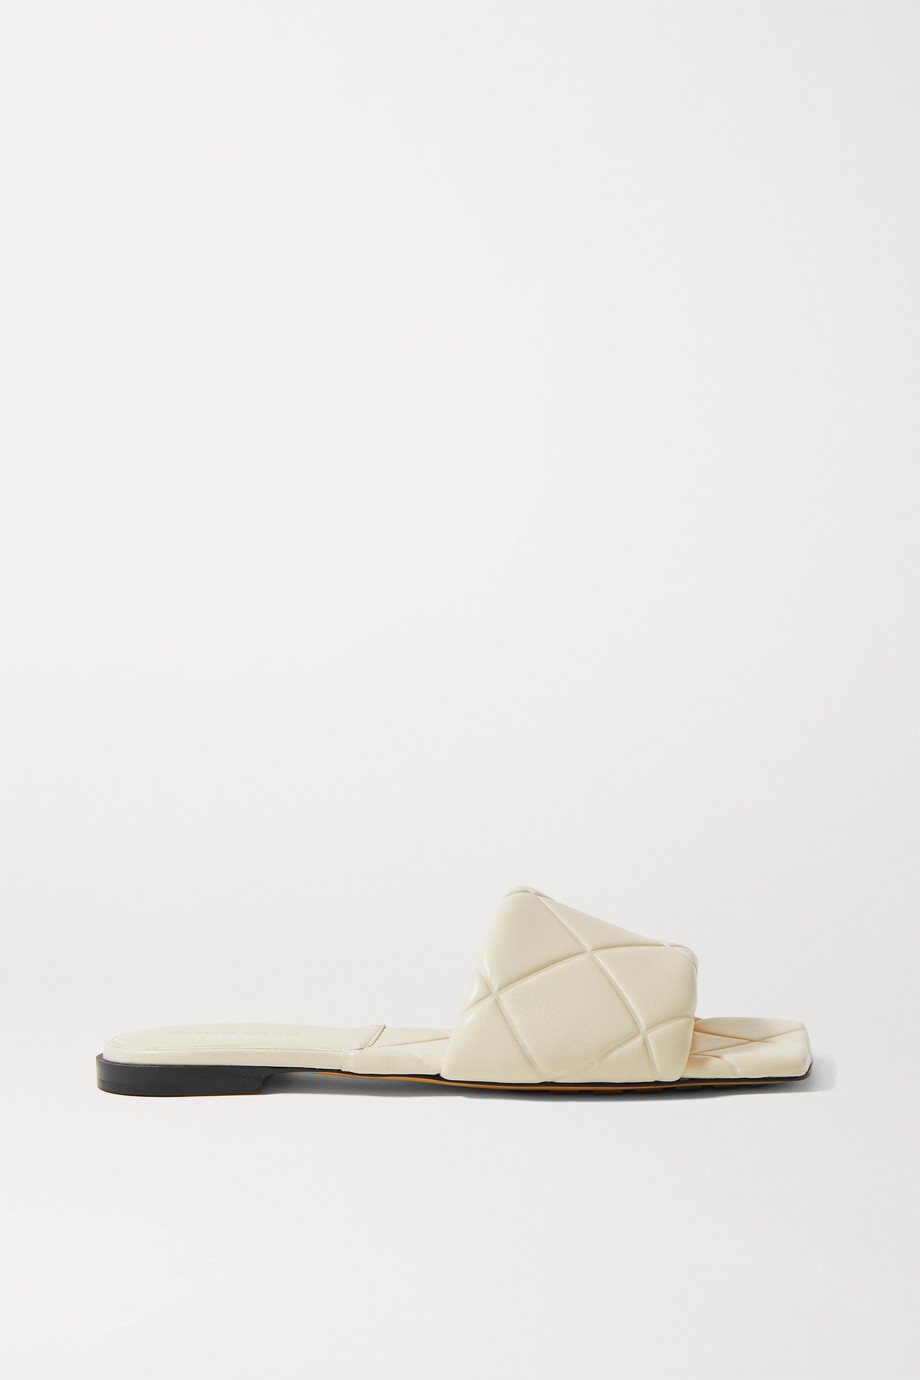 BOTTEGA VENETA Debossed leather slides